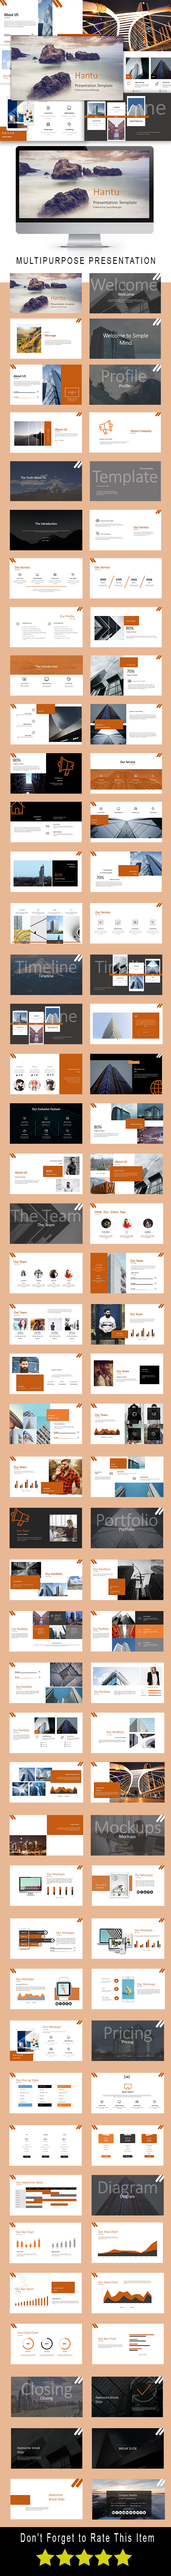 Hantu Multipurpose Powerpoint Template - PowerPoint Templates Presentation Templates